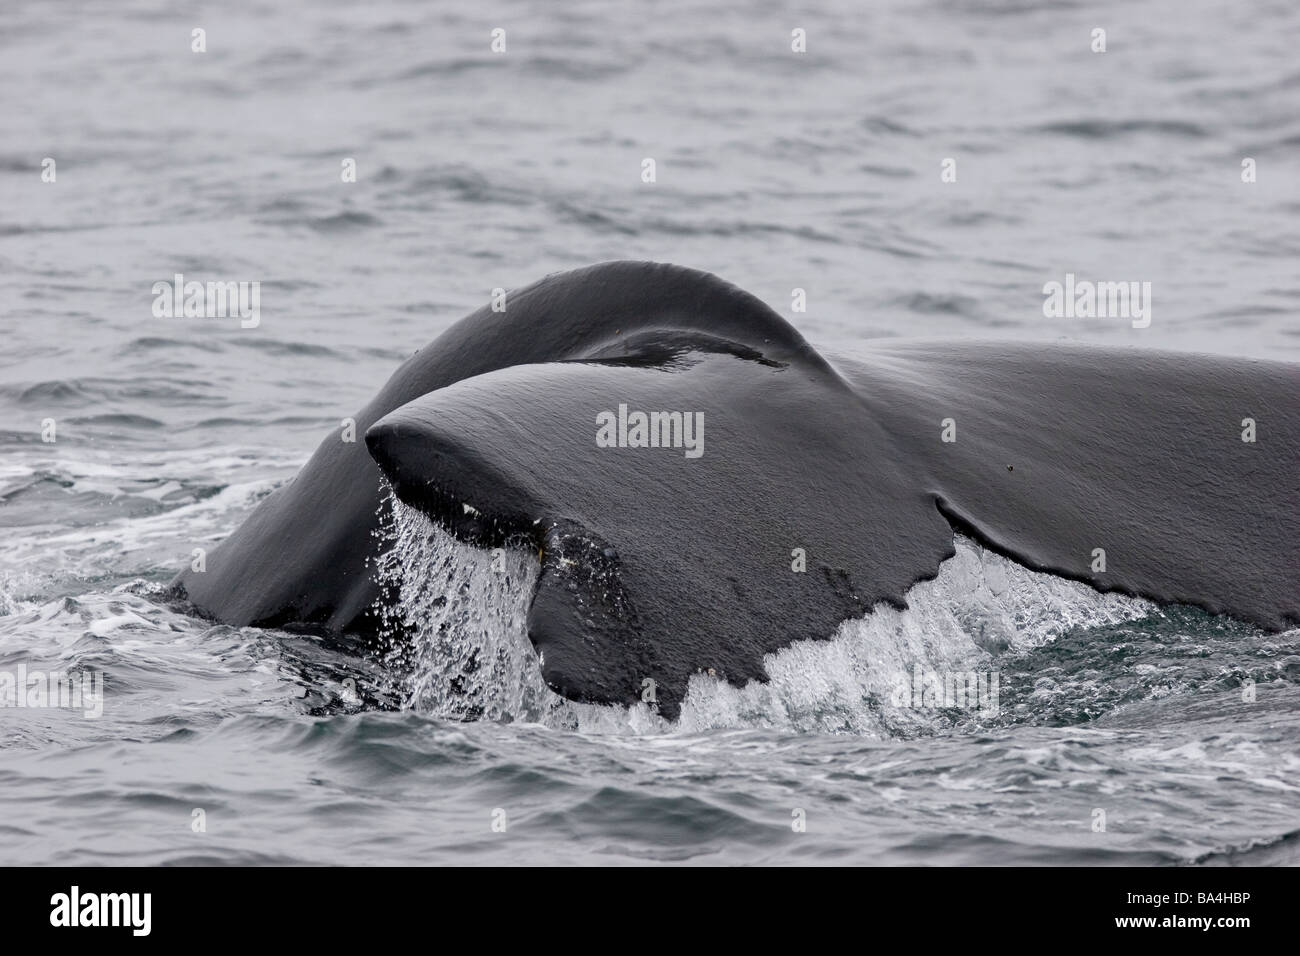 Humpback whale tail, fluking, injured tail, missing tip of fluke in North Atlantic - Stock Image